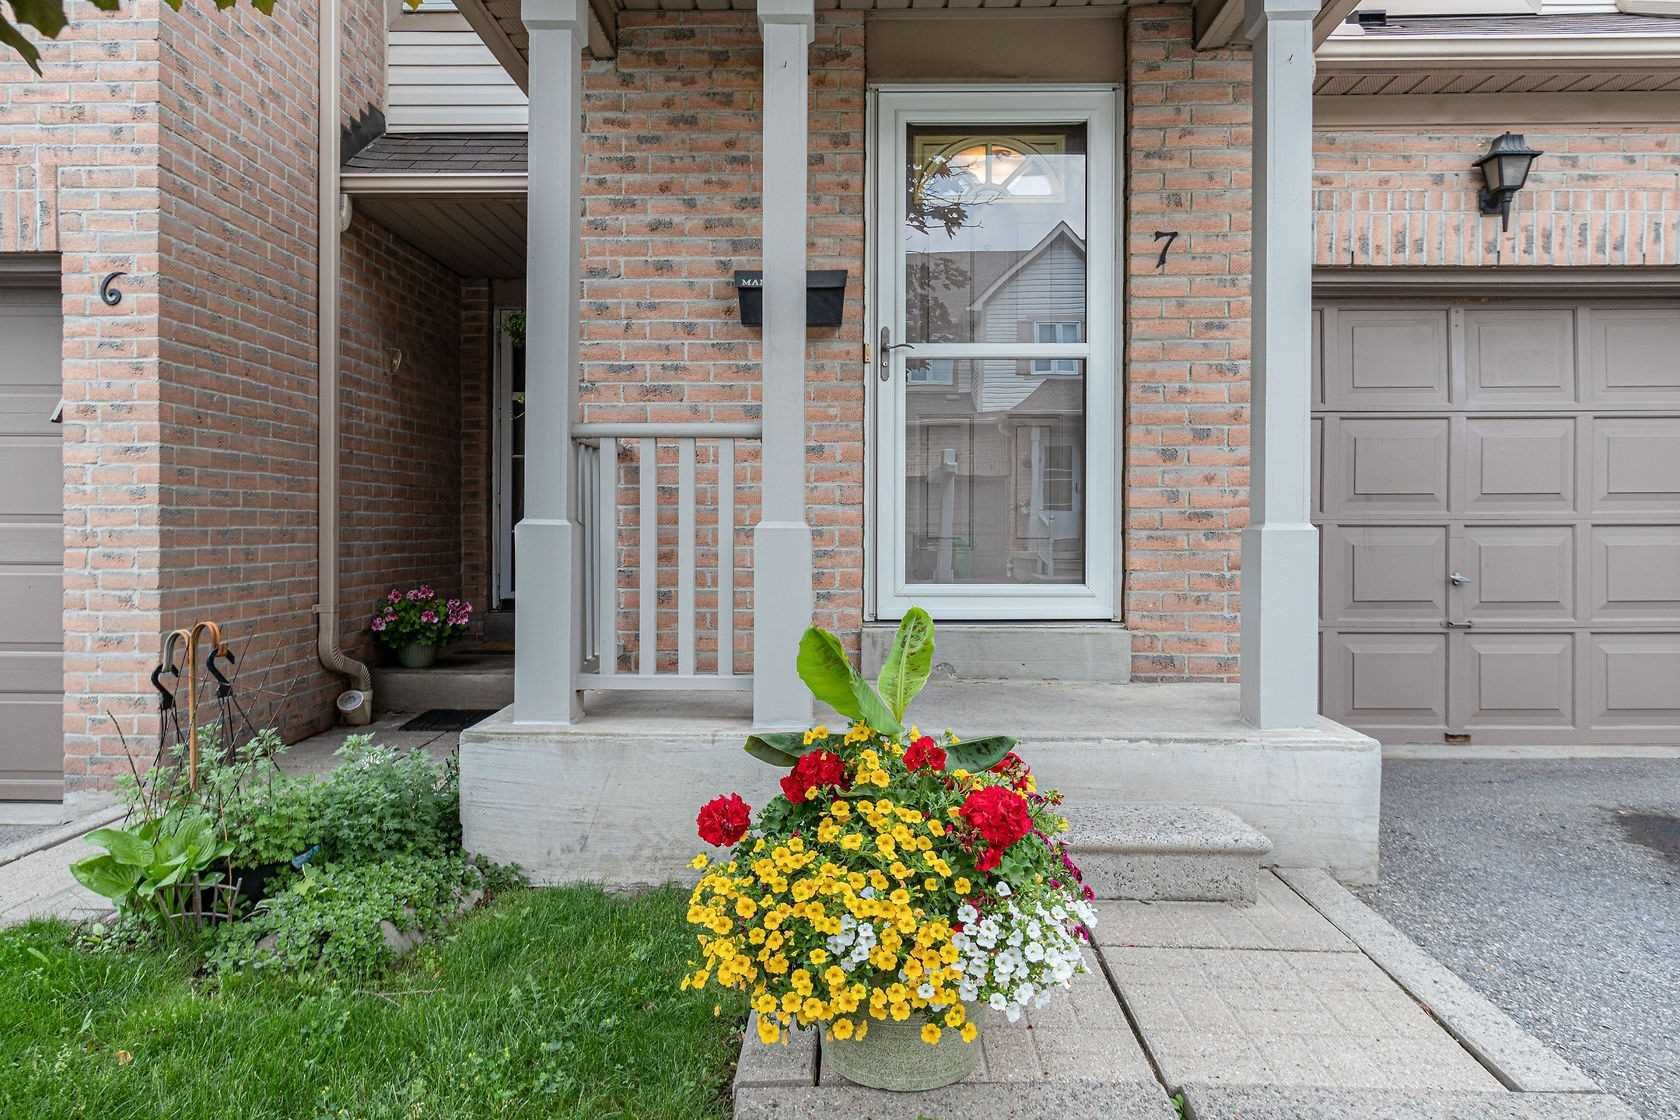 55 Barondale Dr, unit 7 for sale in Toronto - image #2